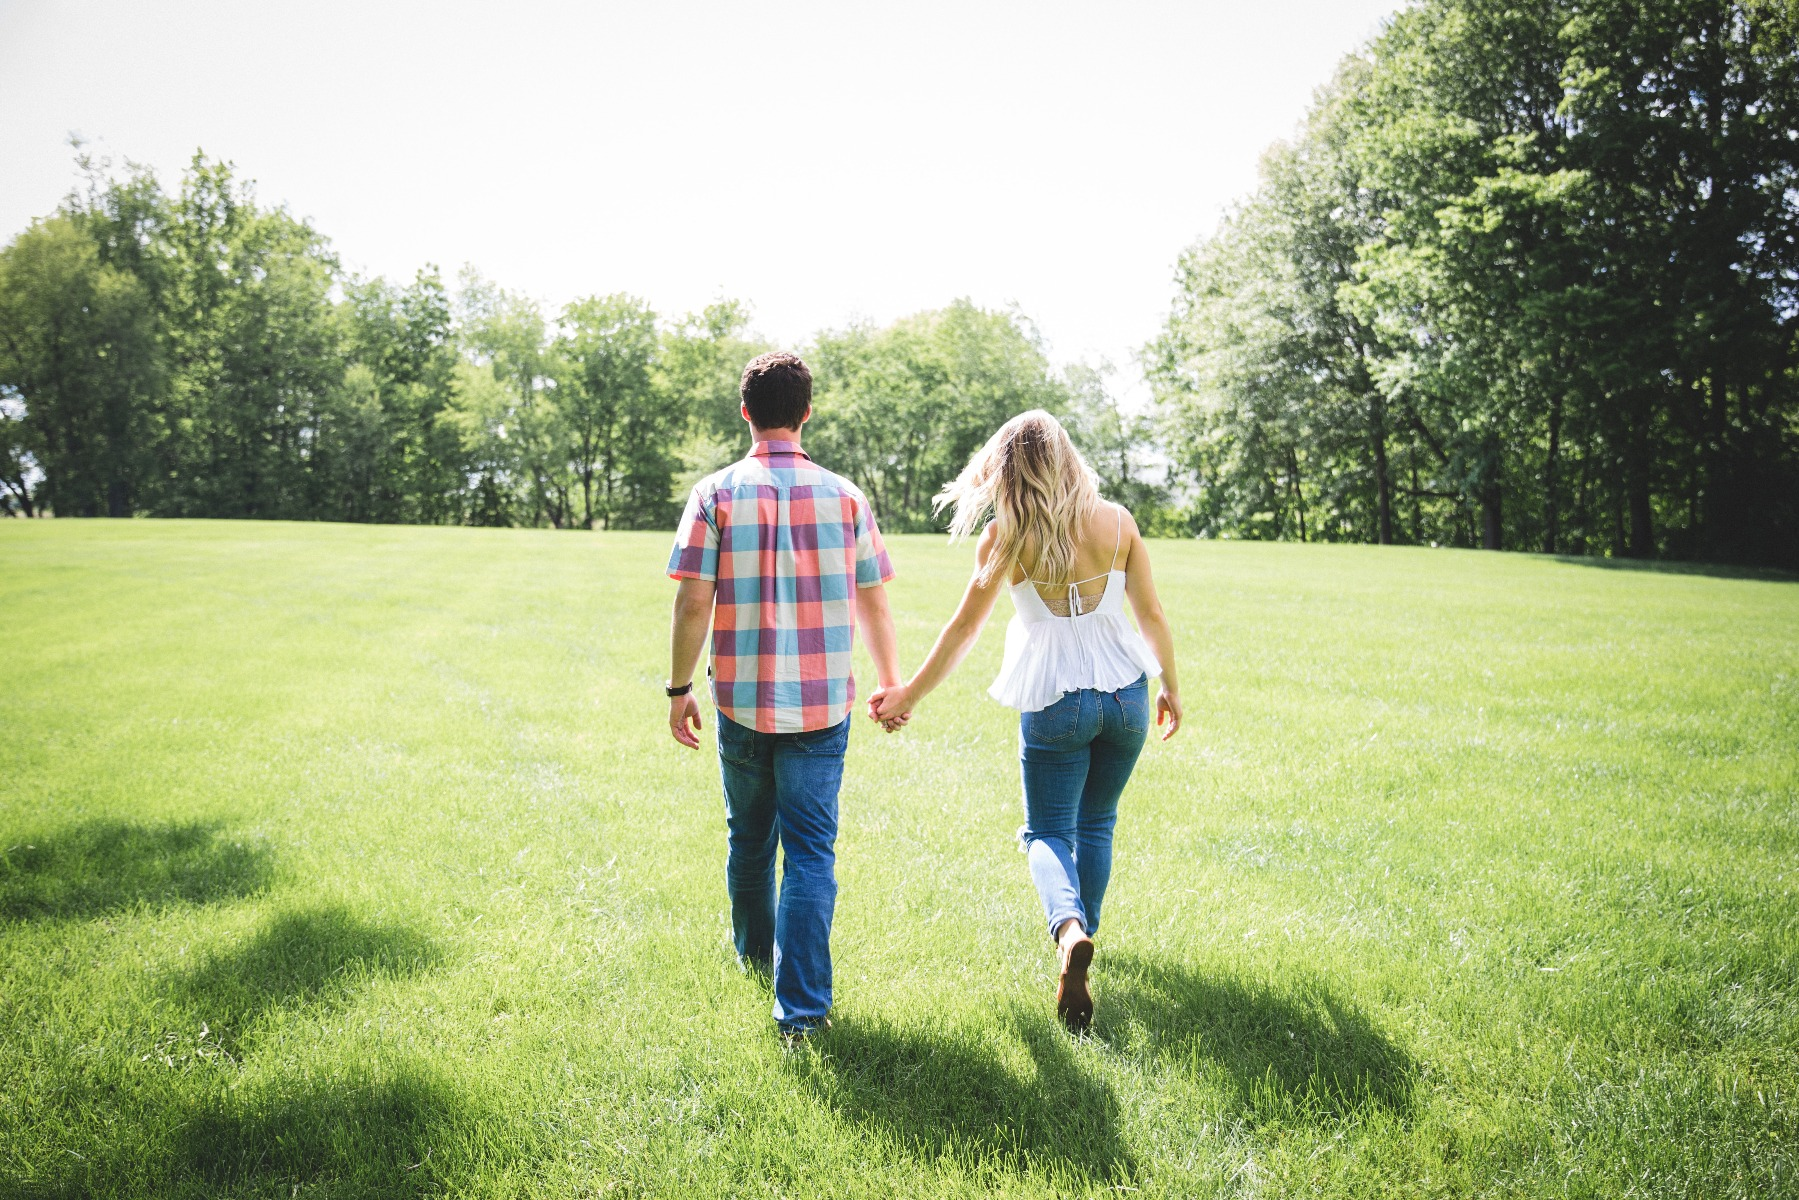 Man and woman standing side-by-side holding hands.